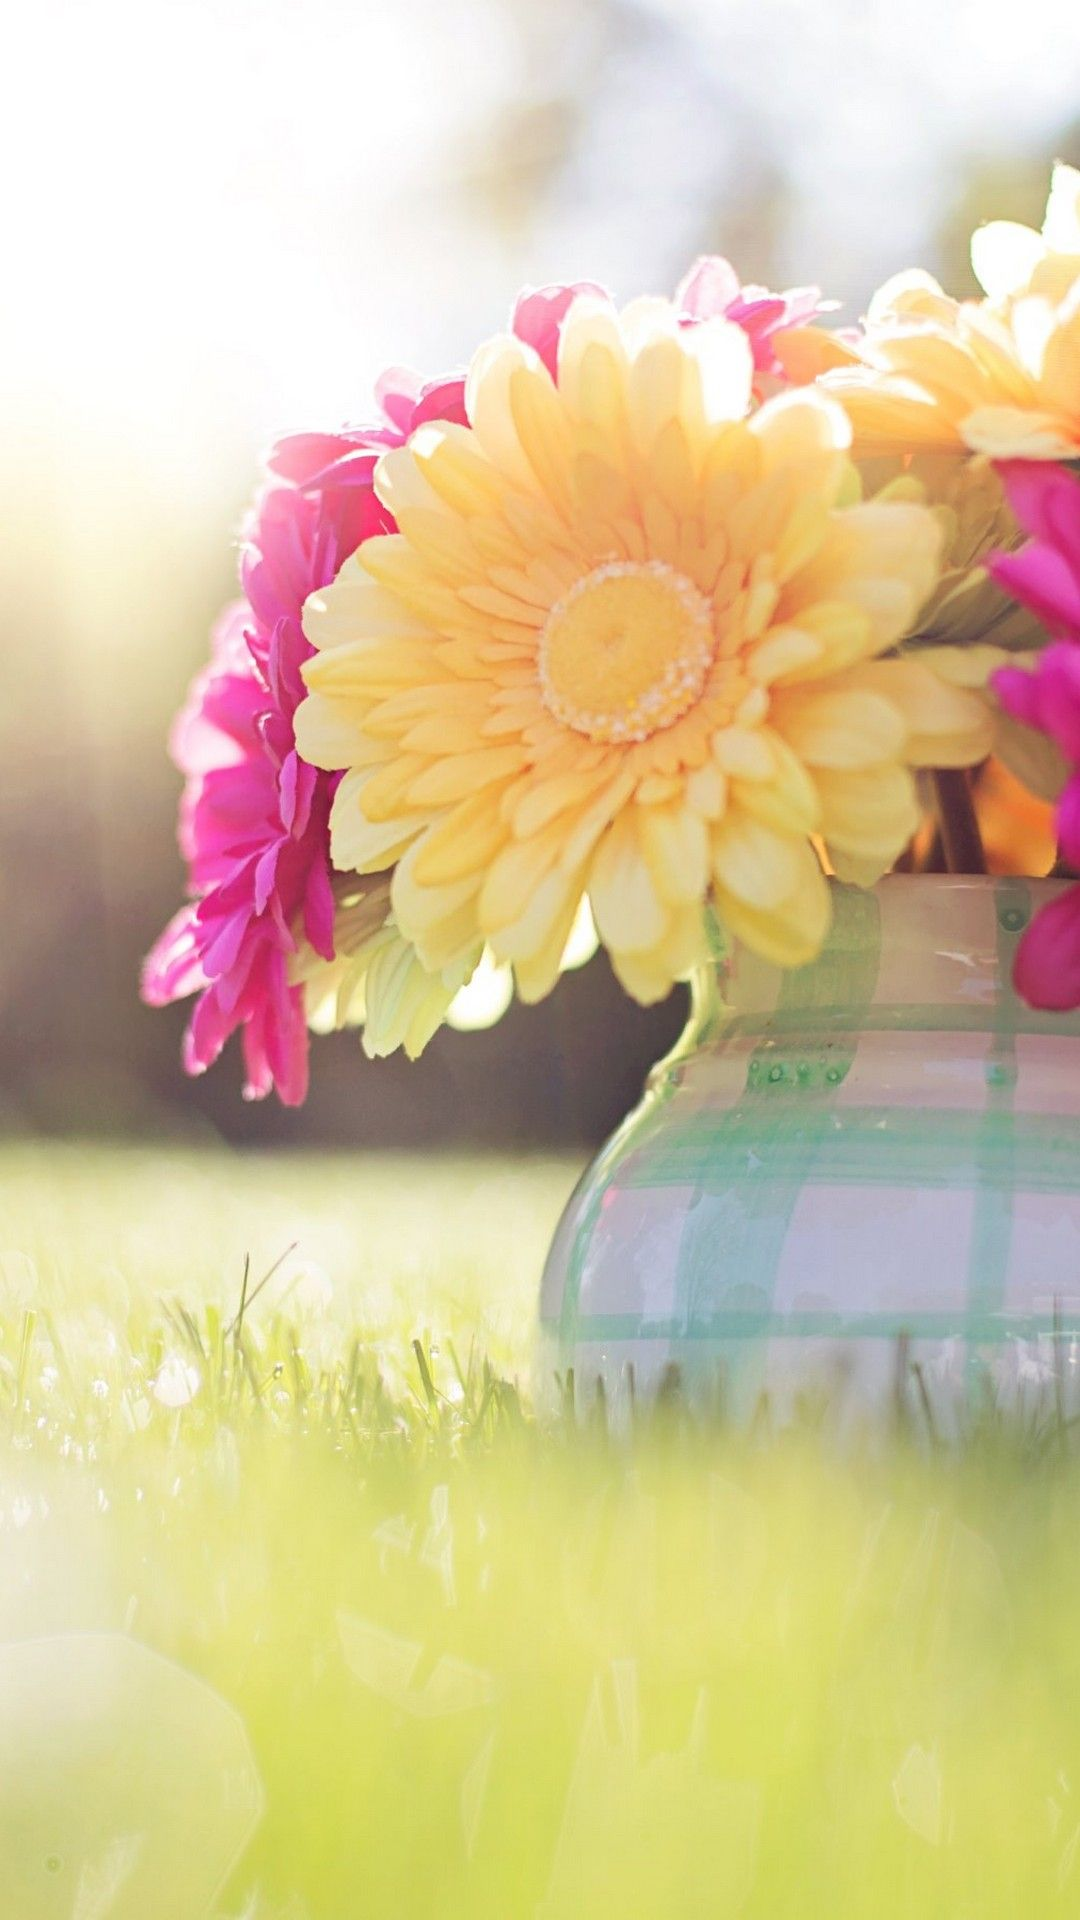 Android Wallpapers HD Cute Spring